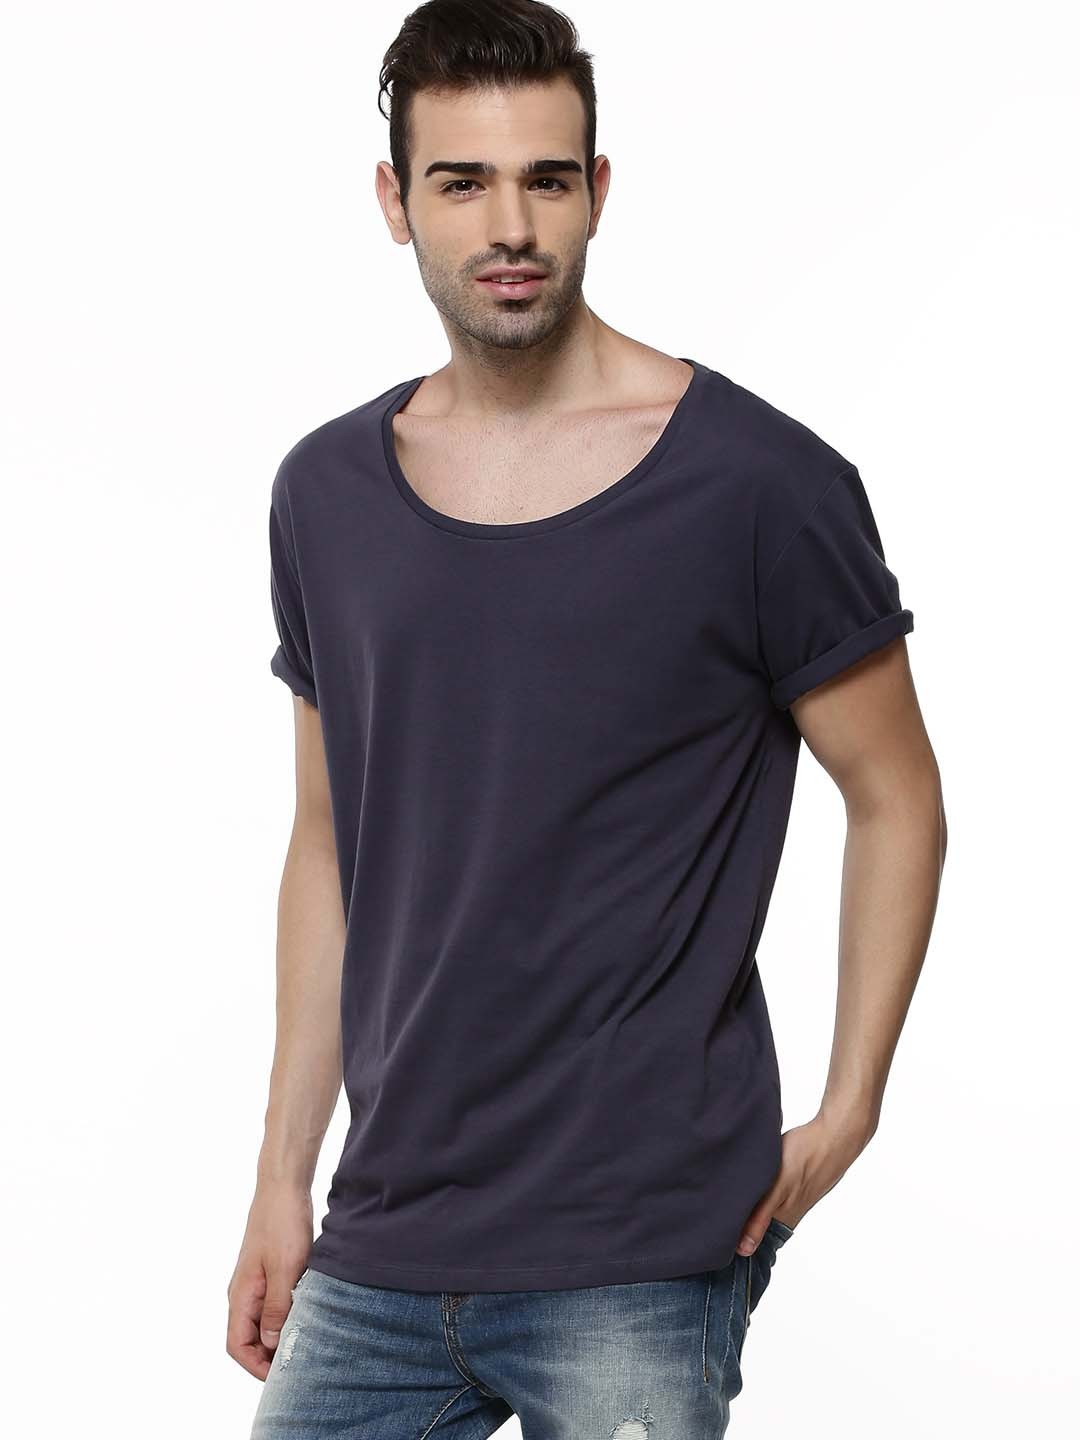 Find wholesale scoop neck tee men online from China scoop neck tee men wholesalers and dropshippers. DHgate helps you get high quality discount scoop neck tee men at bulk prices. s2w6s5q3to.gq provides scoop neck tee men items from China top selected Men's T-Shirts, Men's Tees & Polos, Men's Clothing, Apparel suppliers at wholesale prices.